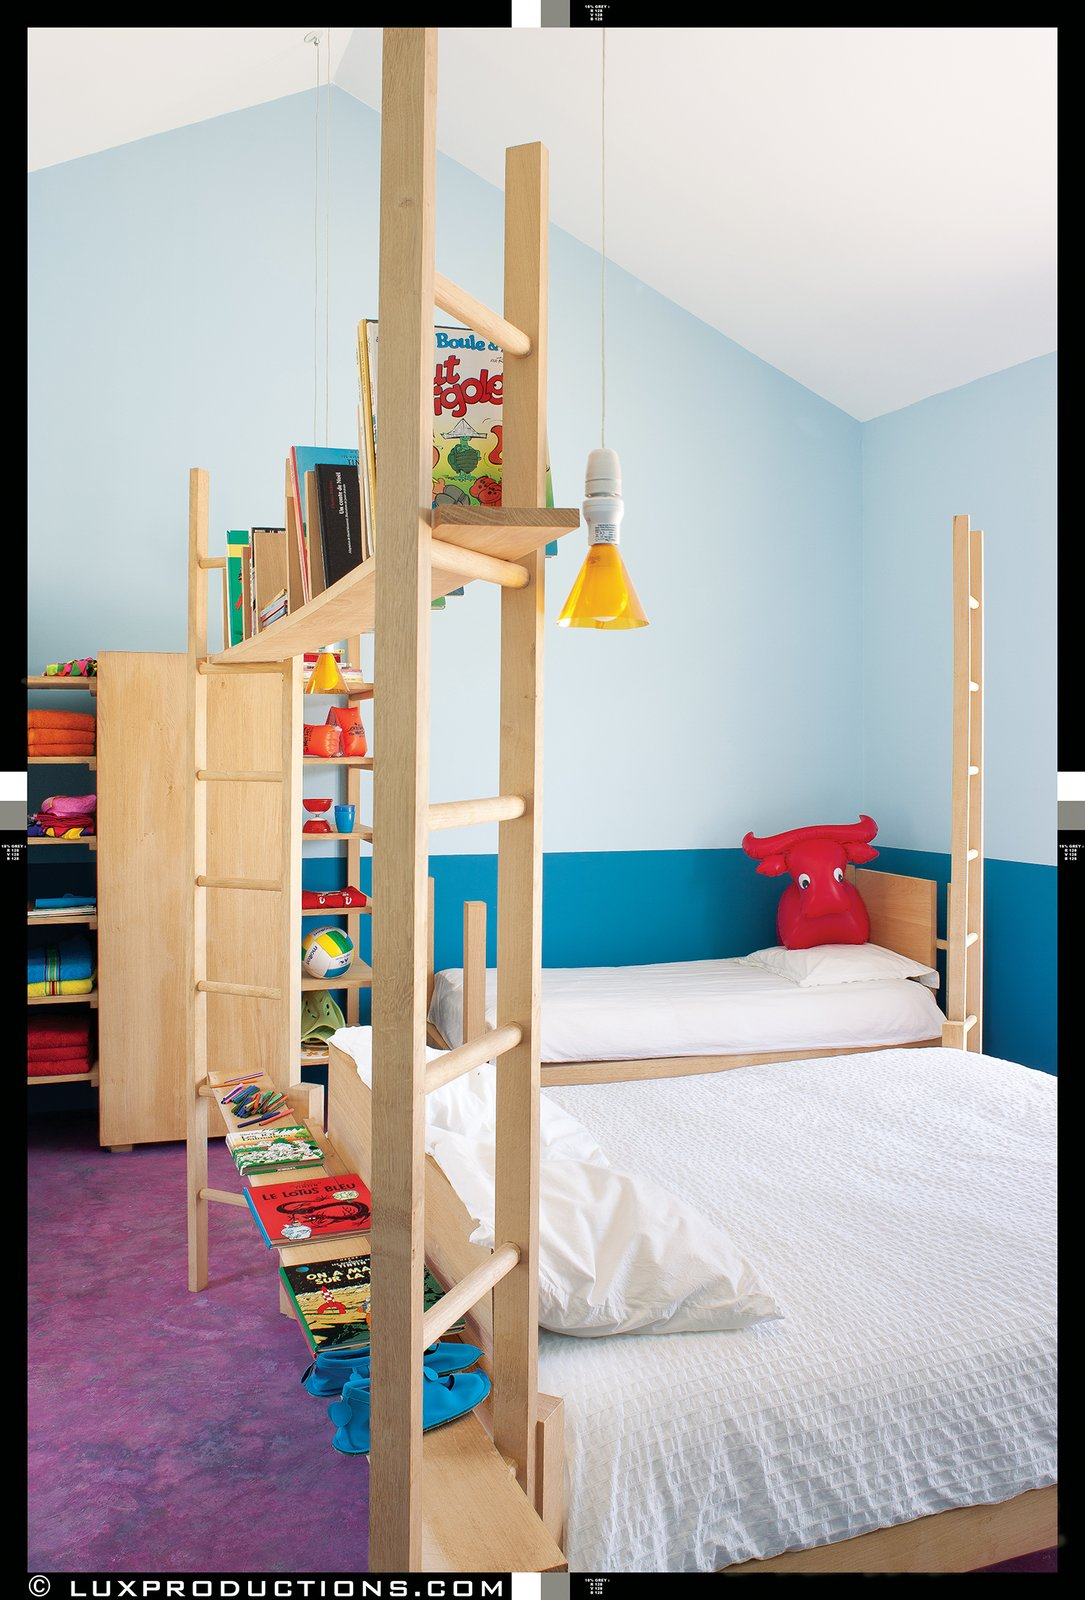 The children's rooms, which are reserved for family and an extended network of friends, feature more custom Crasset-designed beds set against a vivid blue backdrop, courtesy of the French paint brand Zolpan. Matali Crasset Renovates Monory Farmhouse - Photo 11 of 12